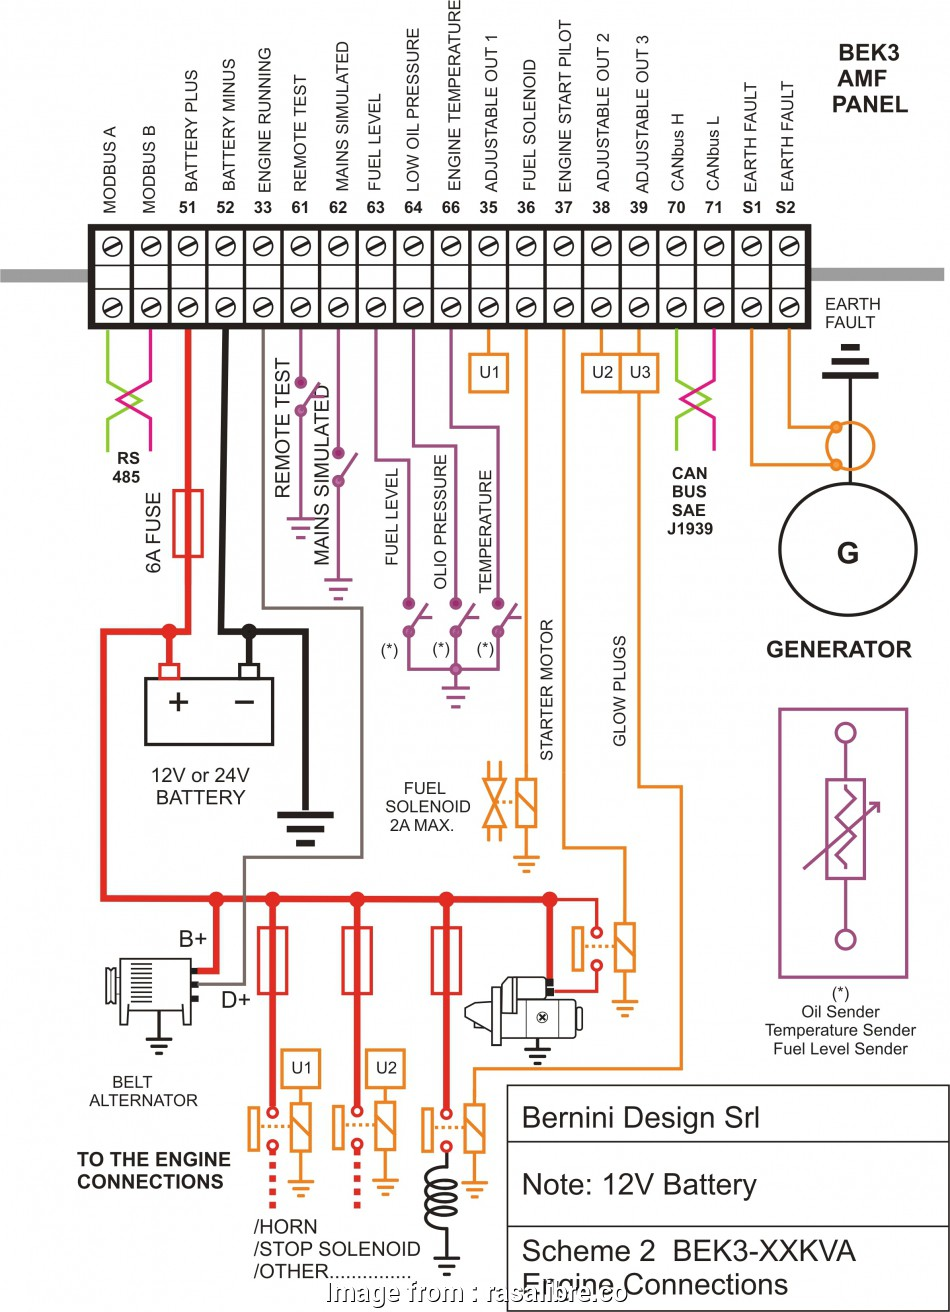 home electrical wiring for sale house, fuse, diagram electrical wiring diagrams rh cytrus co, vw busses, sale 20 Most Home Electrical Wiring, Sale Images